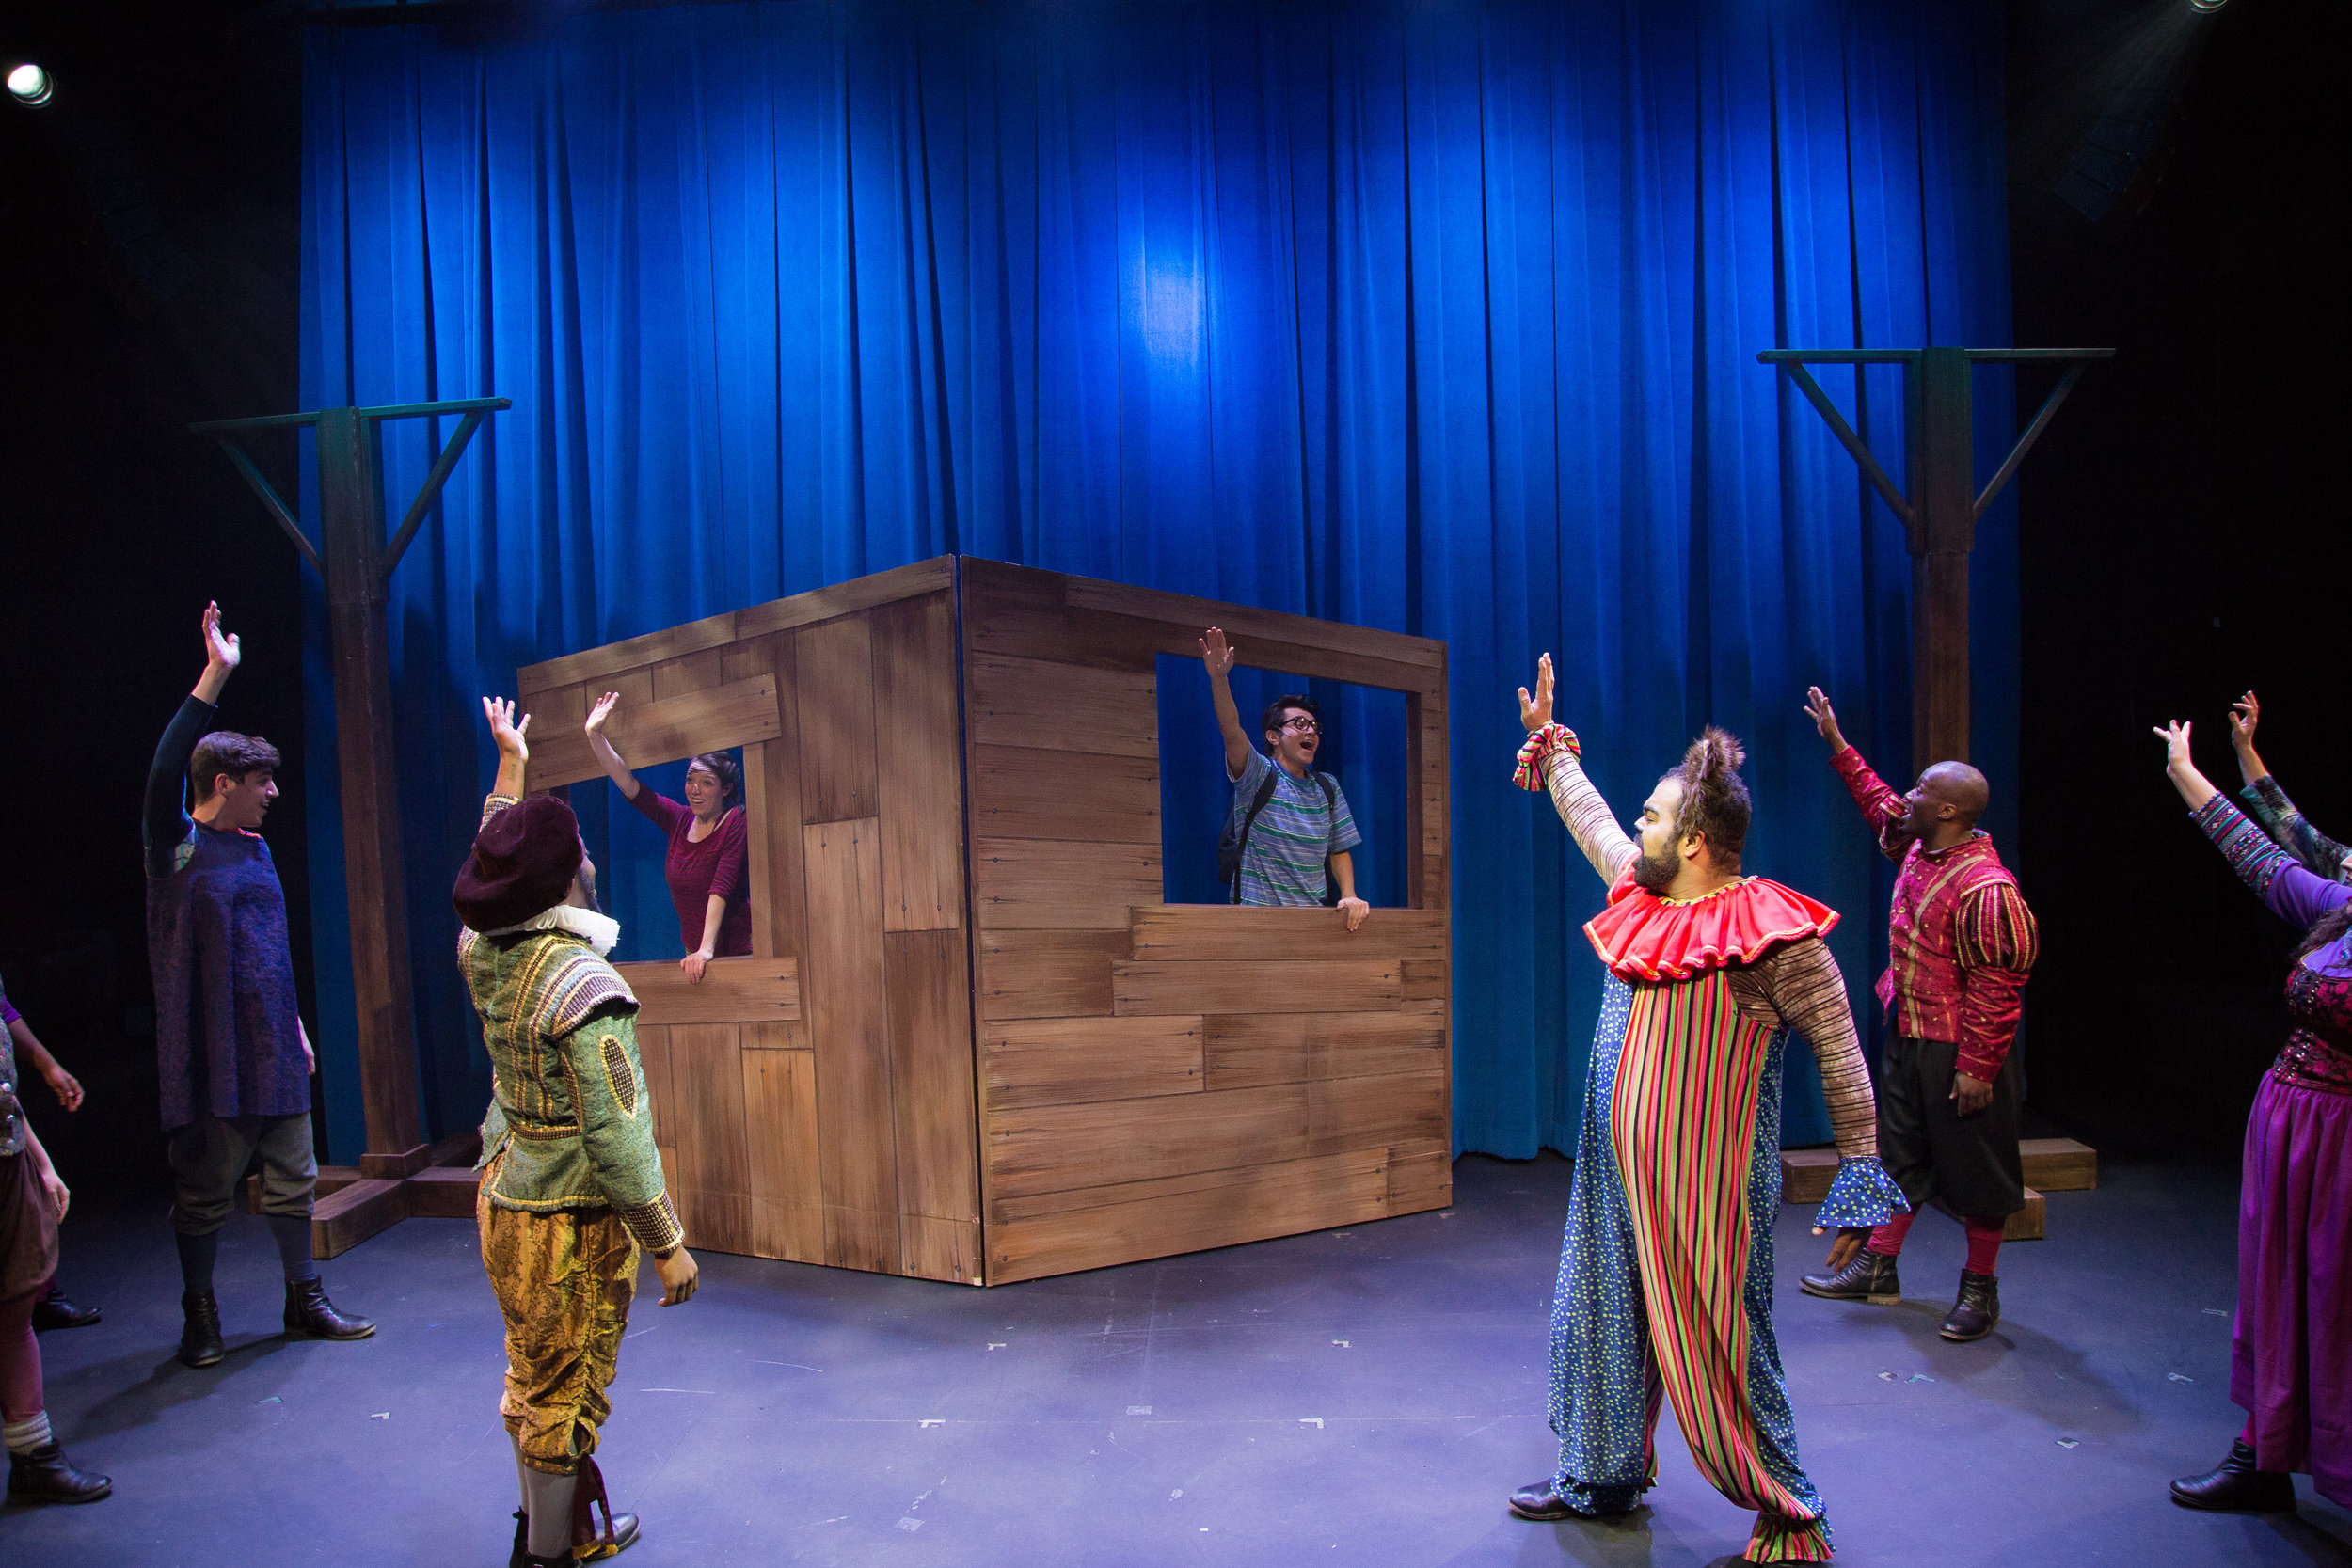 emerald-city-theatres-magic-tree-house-showtime-with-shakespeare_26006947578_o.jpg